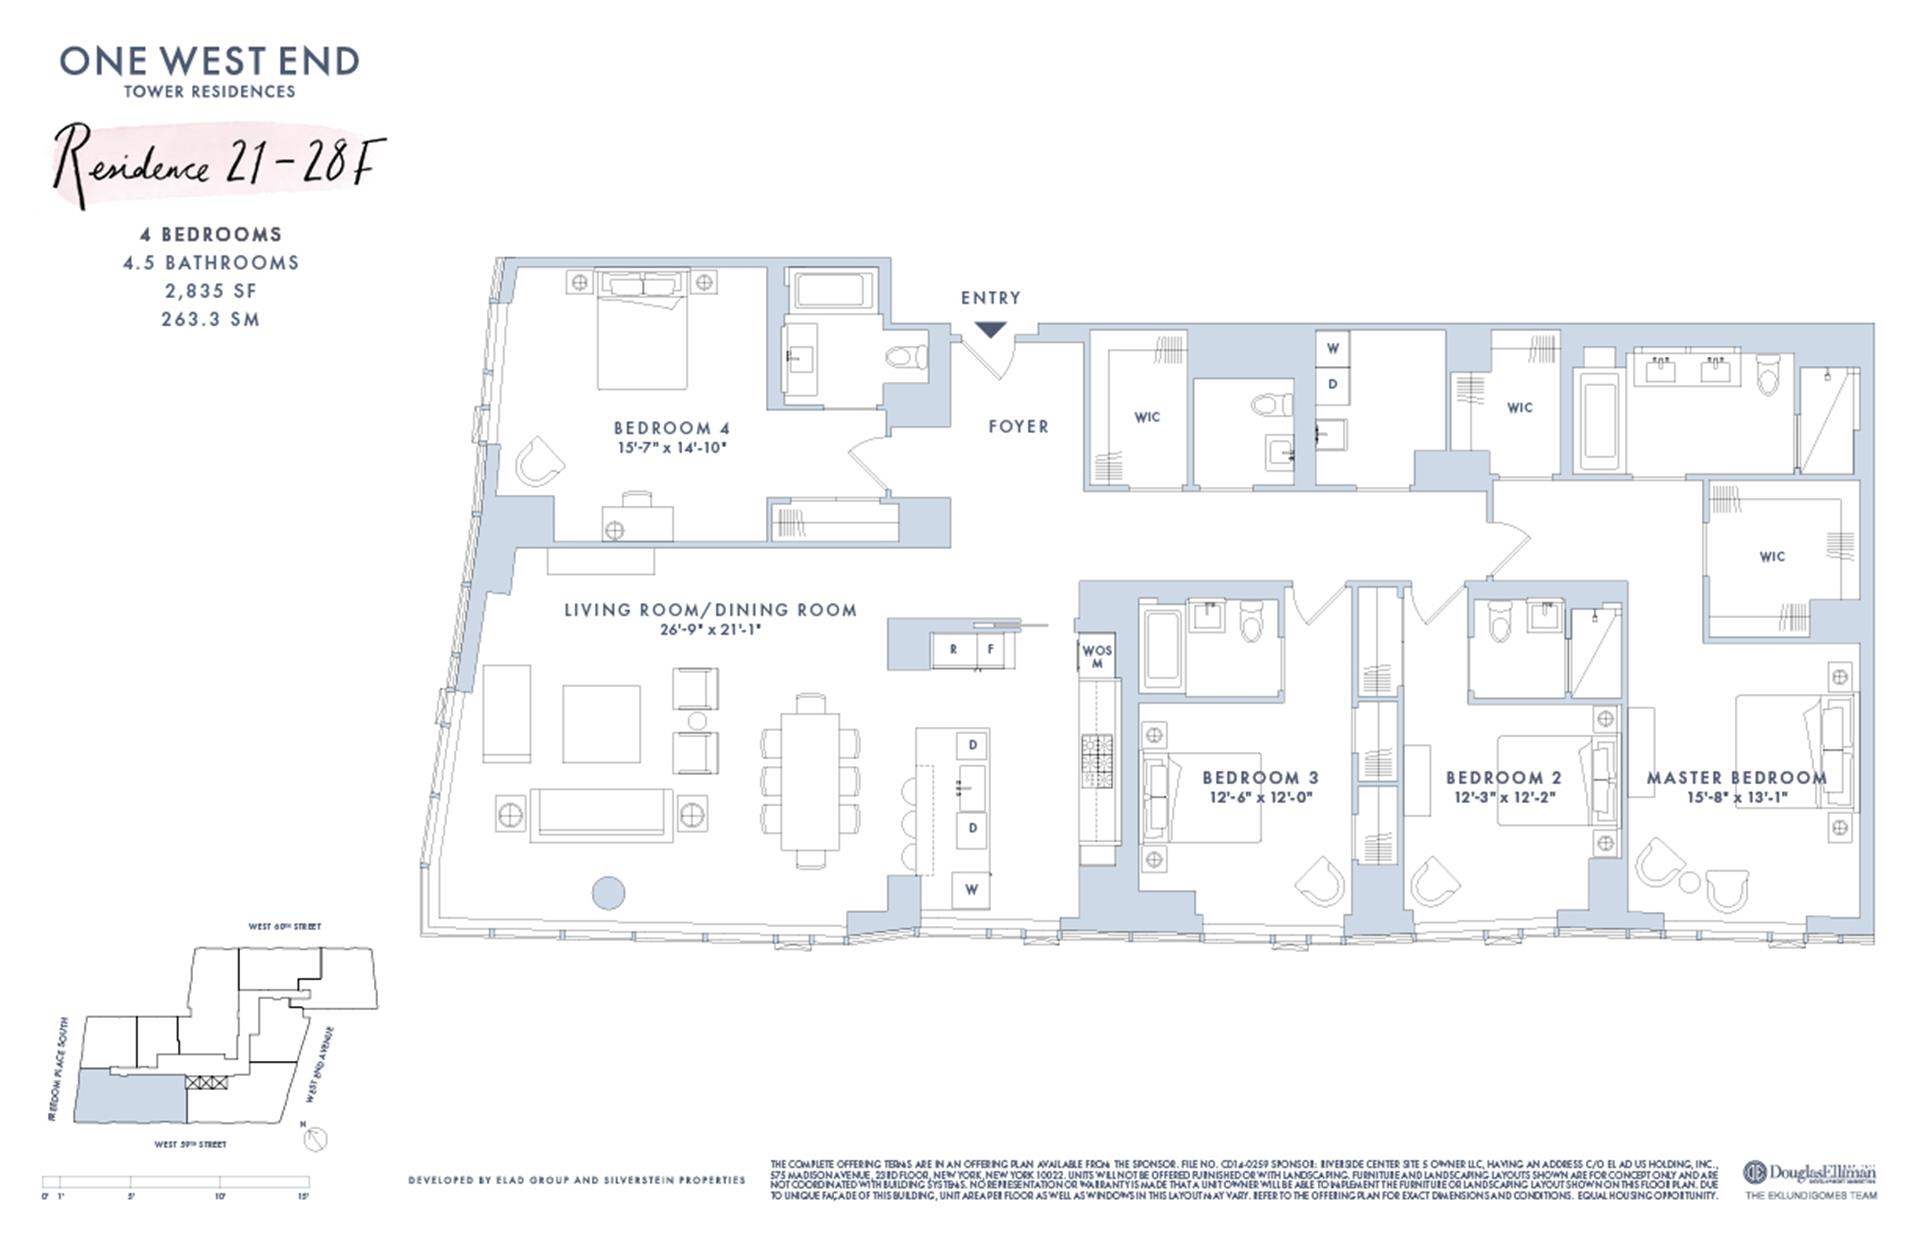 Floor plan of One West End, 1 West End Avenue, 21F - Upper West Side, New York